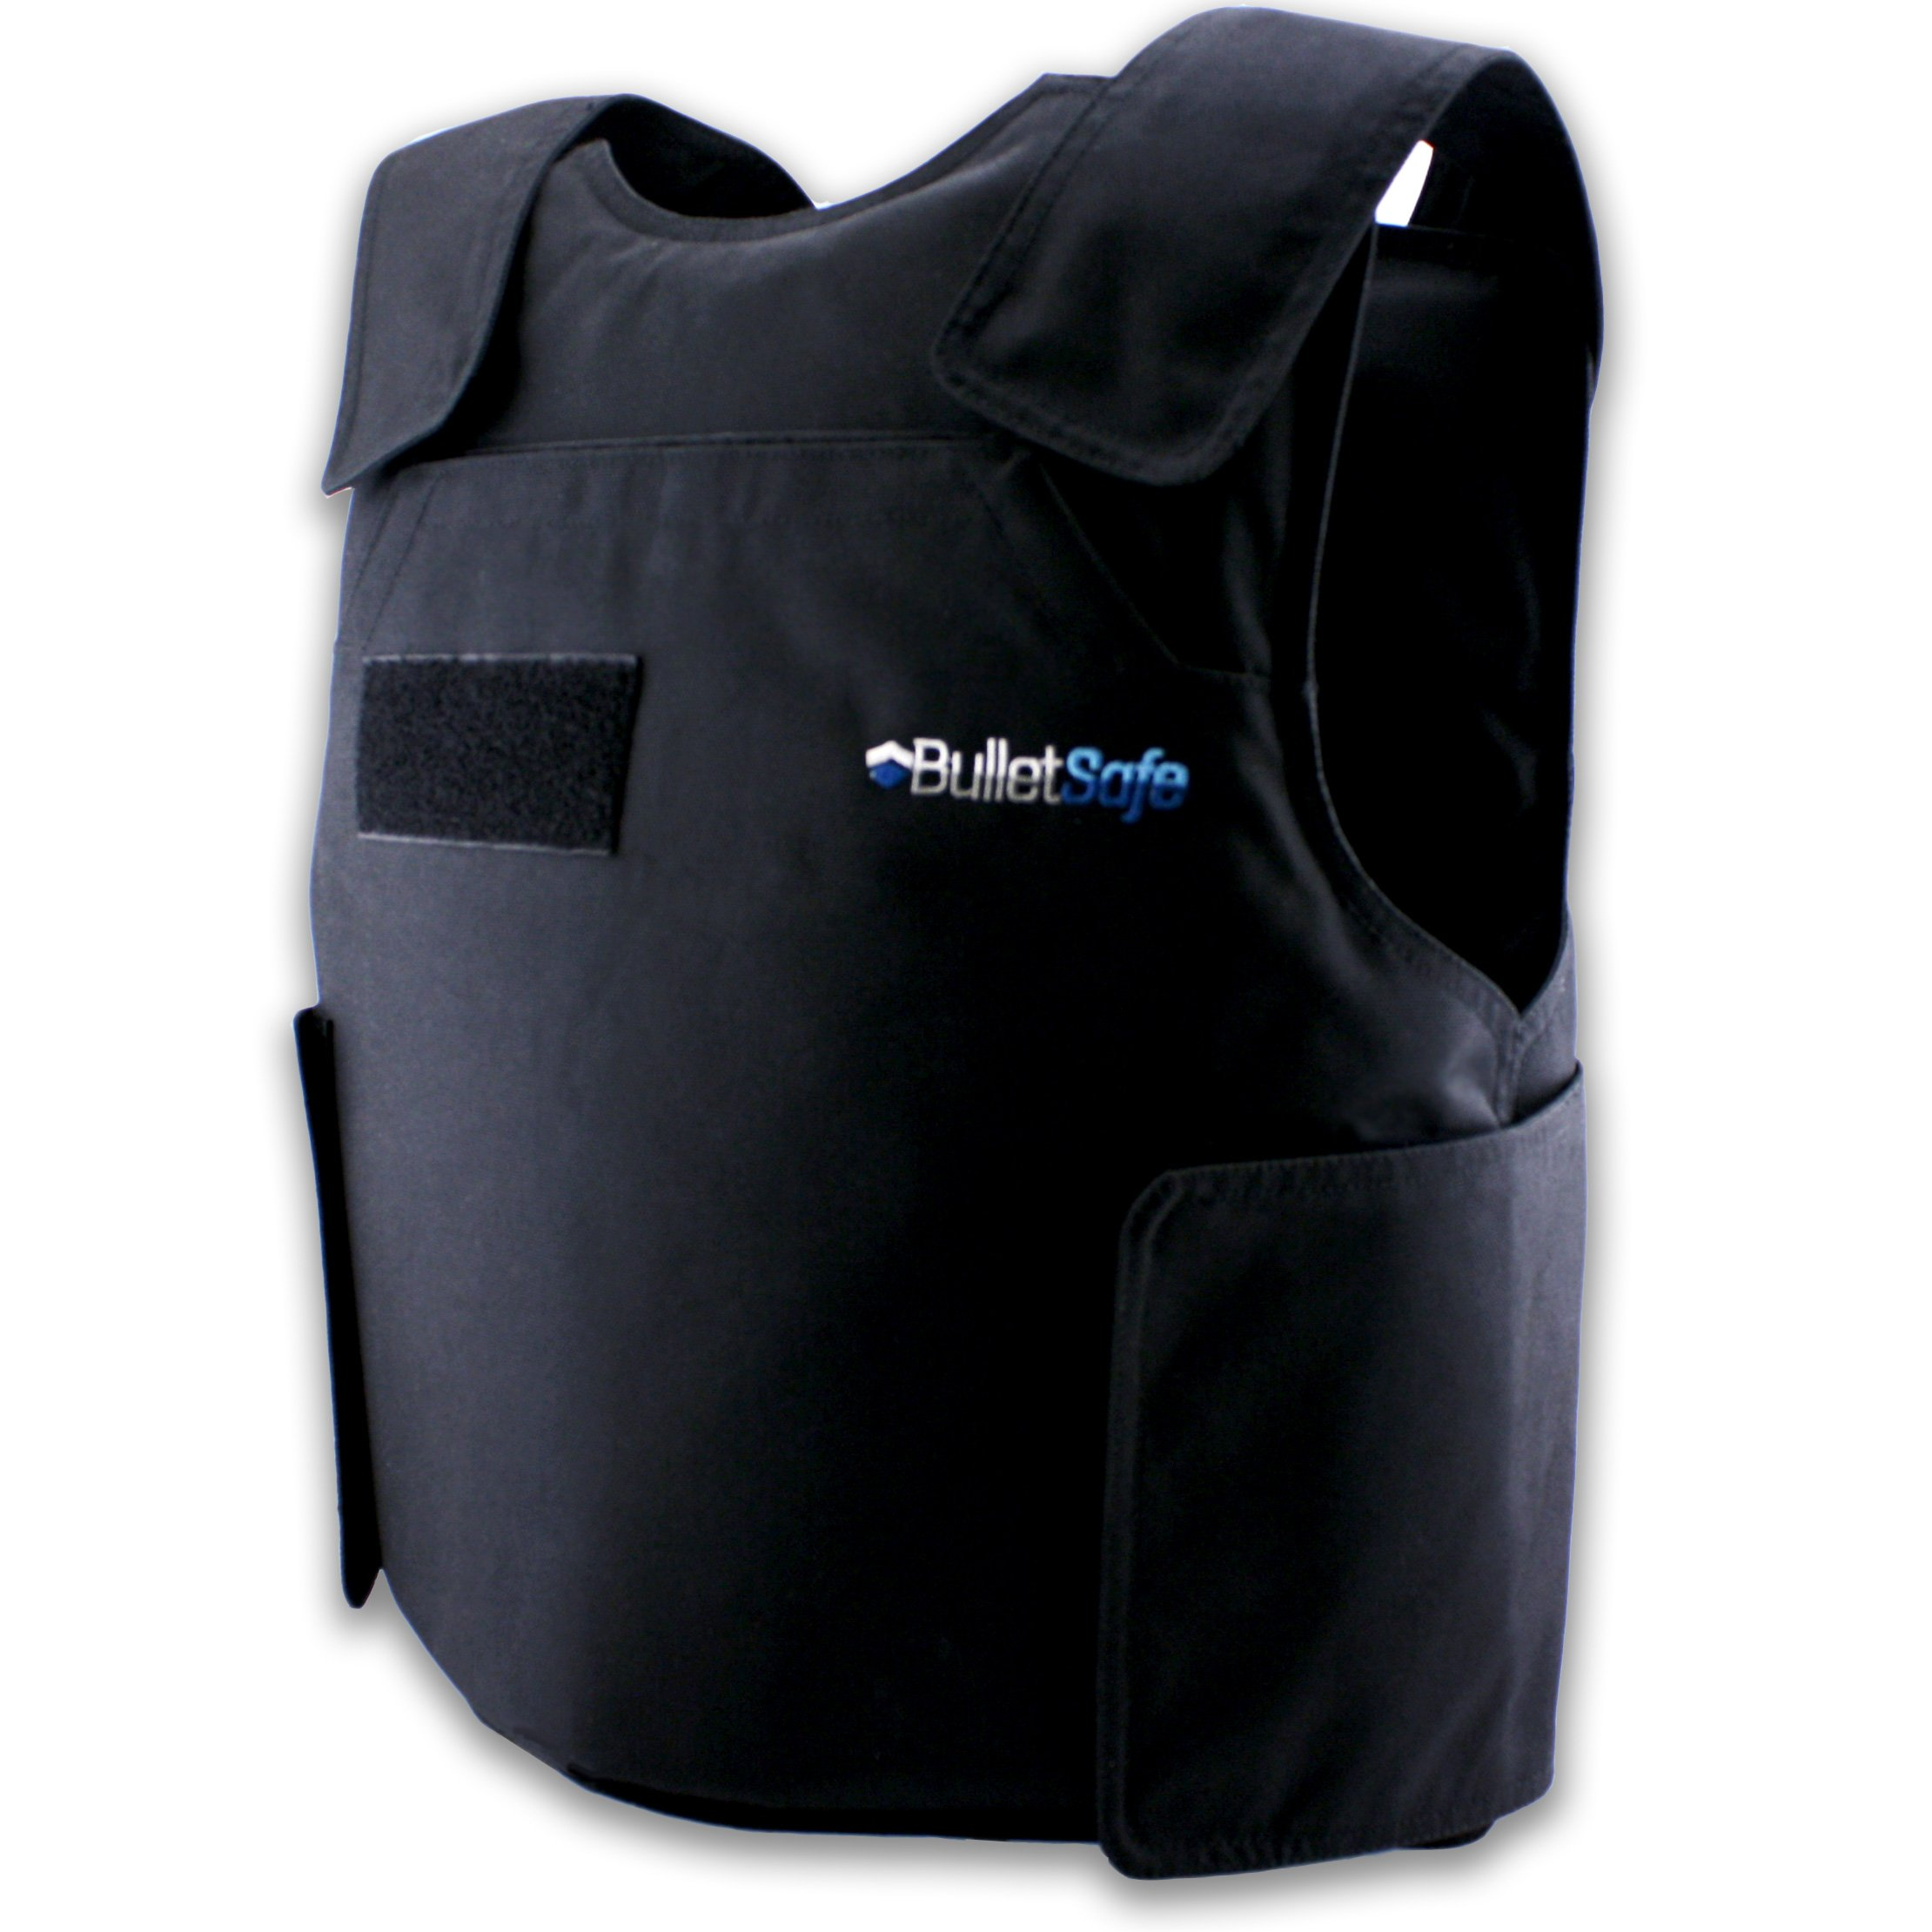 BulletSafe Bulletproof Vest - Brand New - Level IIIA + Stabproof